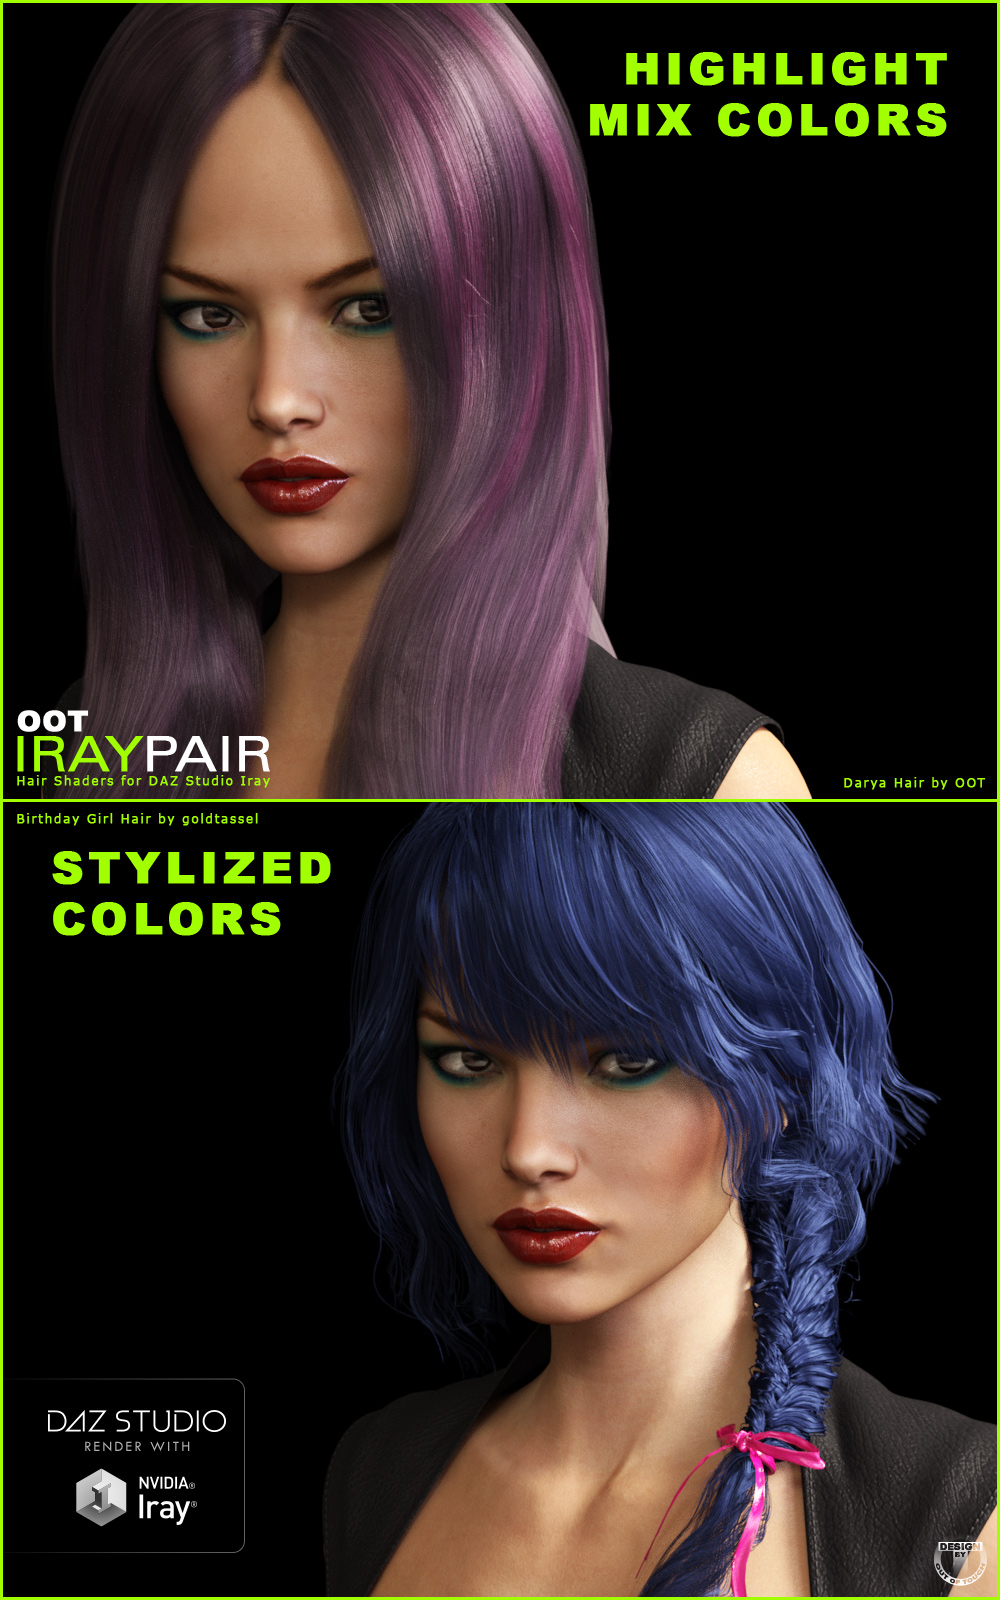 Oot Iraypair Hair Shader Xpansion For Daz Studio Iray 3d Figure